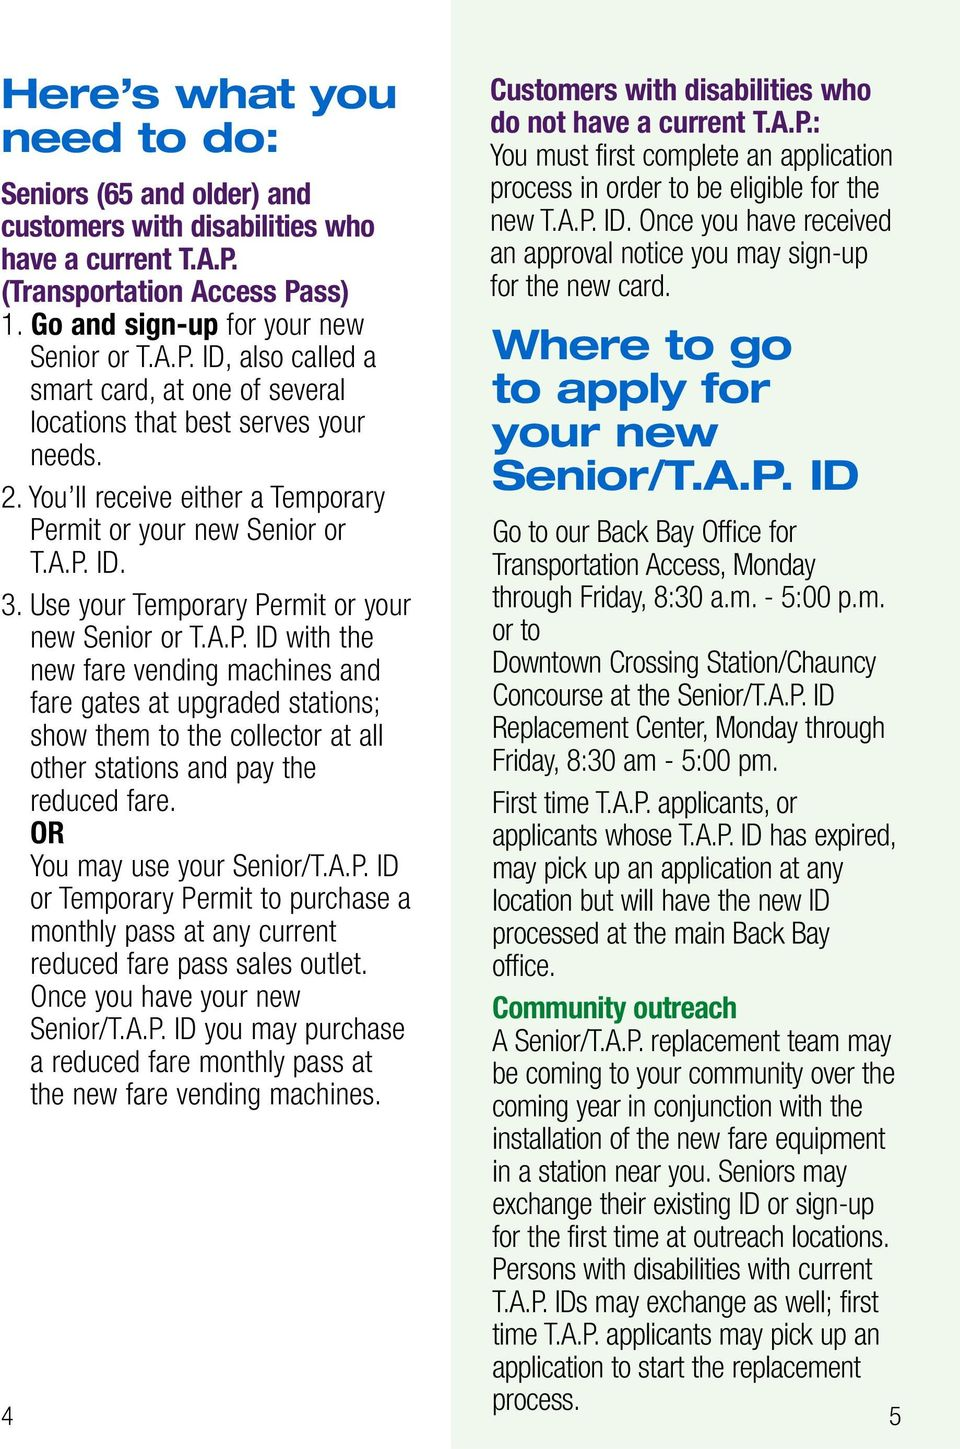 You may use your Senior/T.A.P. ID or Temporary Permit to purchase a monthly pass at any current reduced fare pass sales outlet. Once you have your new Senior/T.A.P. ID you may purchase a reduced fare monthly pass at the new fare vending machines.